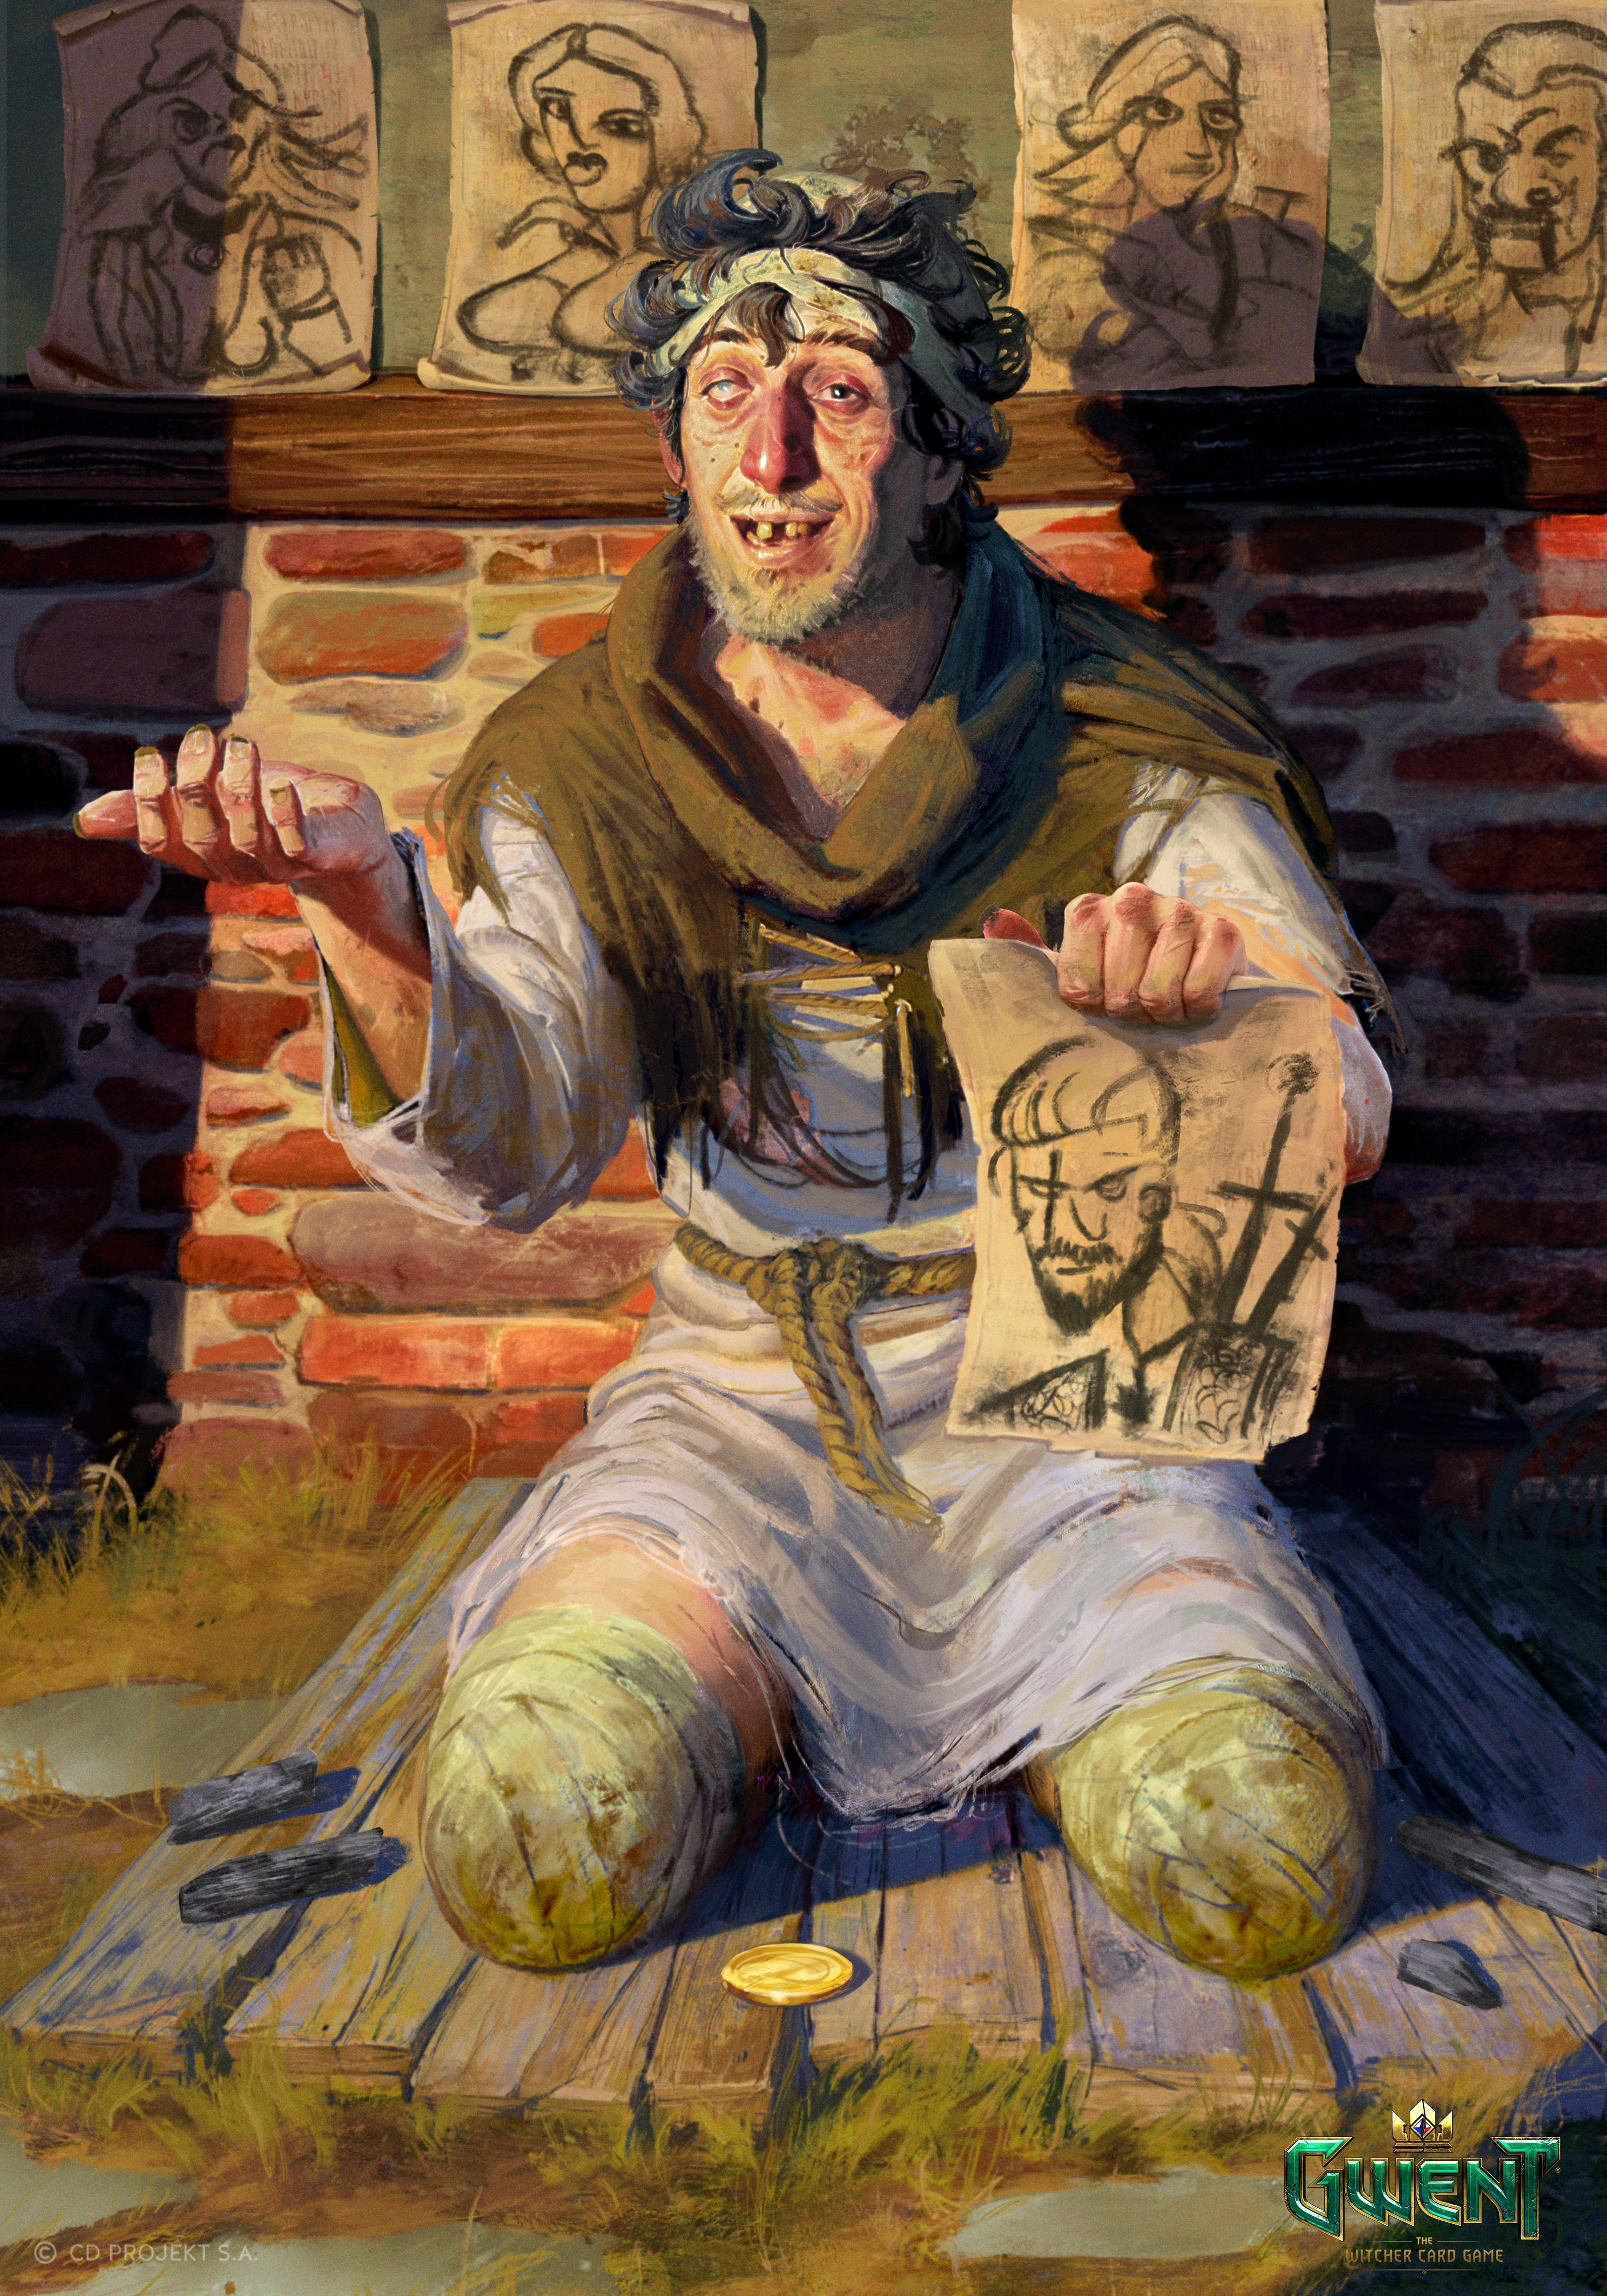 Fine Art: Gwent Is Still The Best-Looking Card Game Out